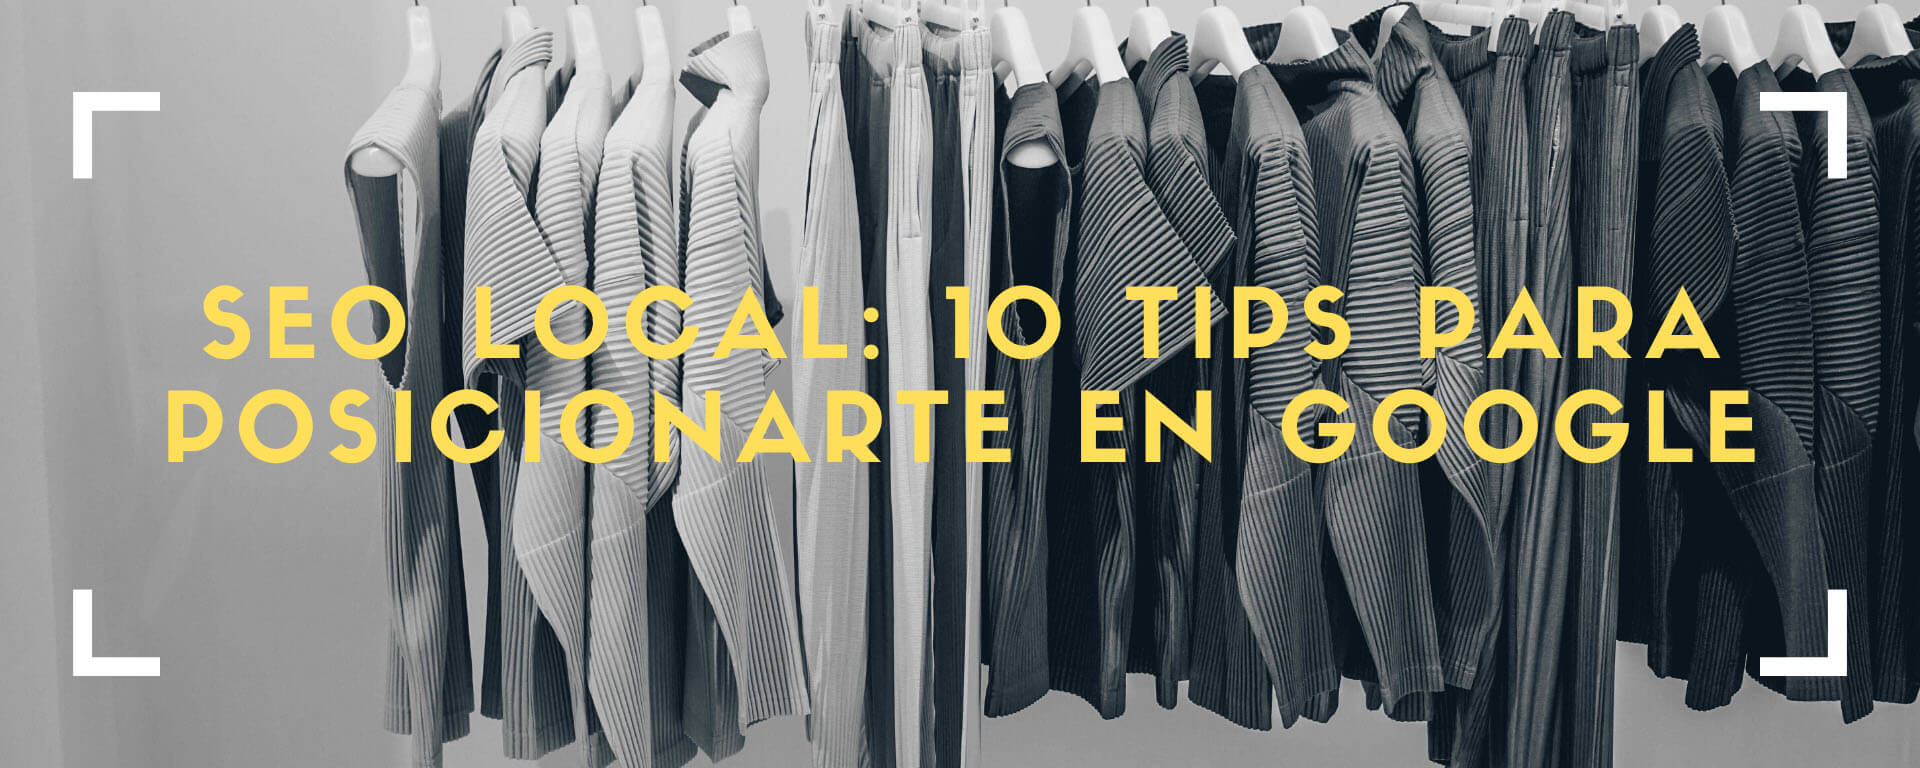 10 tips para posicionarte con seo local